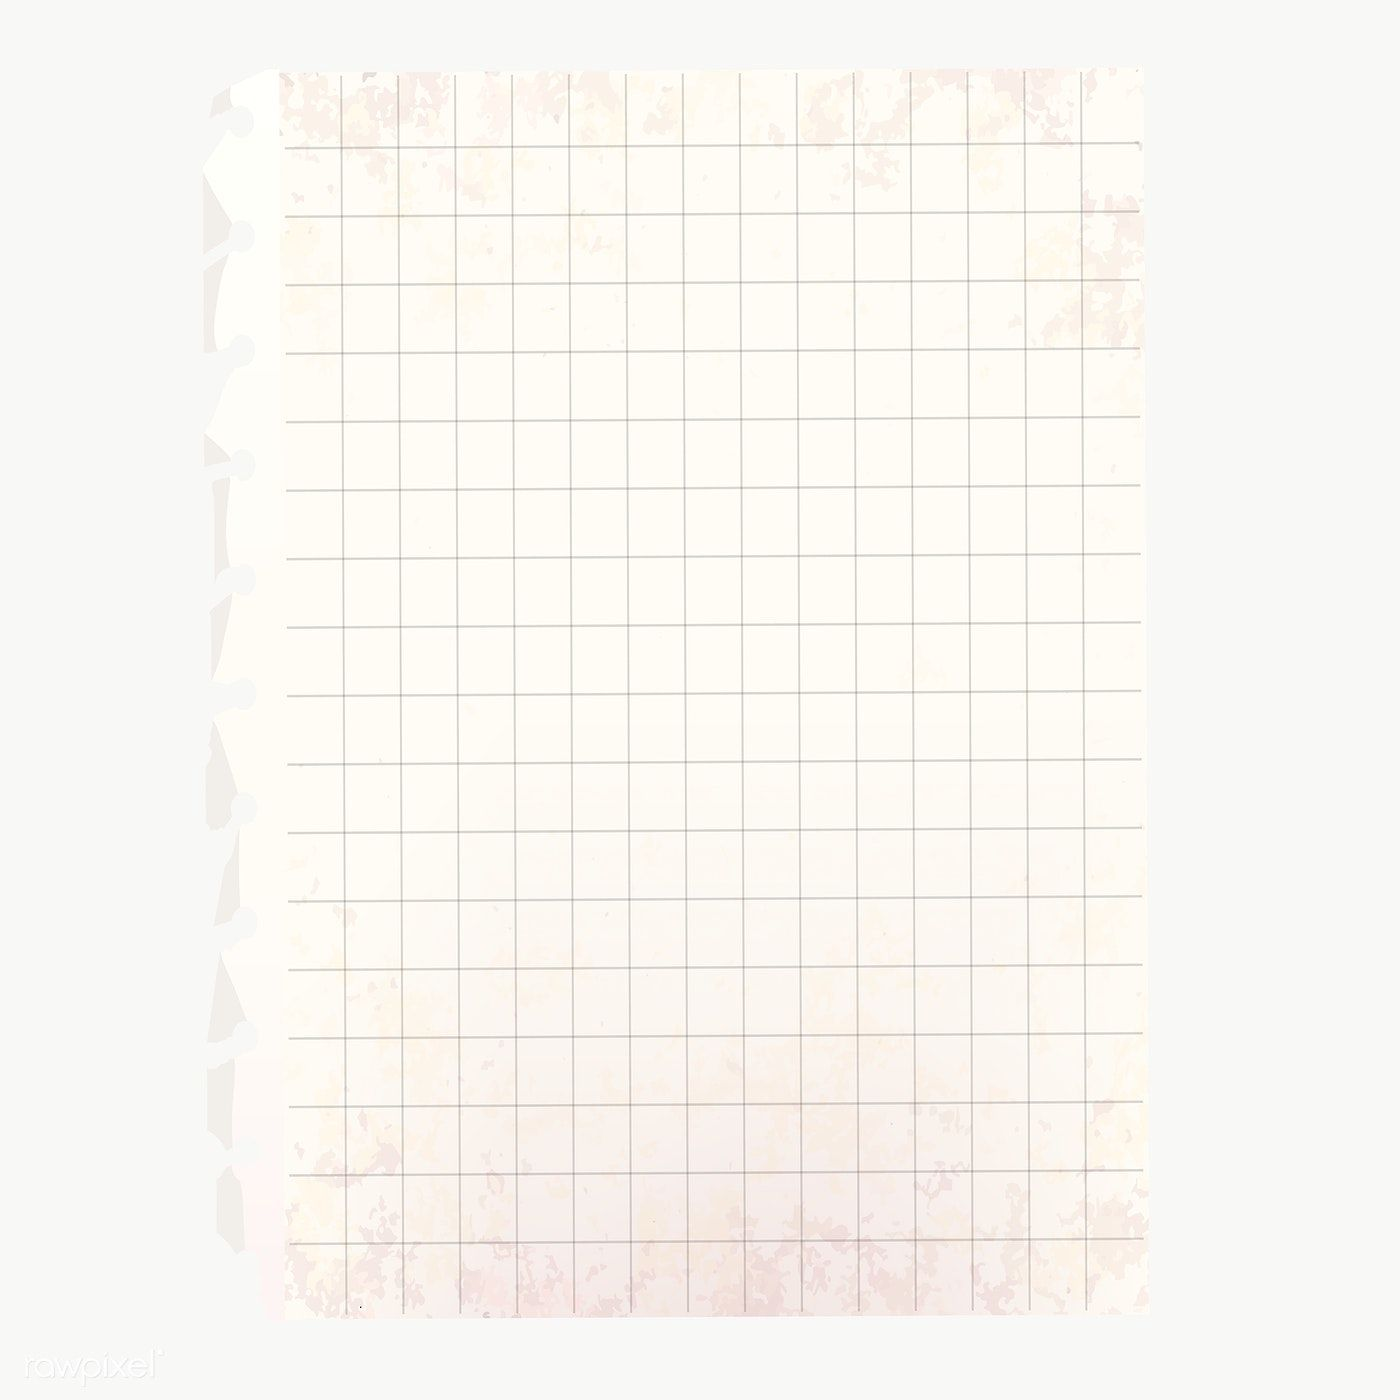 White Paper Note Social Ads Template Transparent Png Free Image By Rawpixel Com Manotang Note Paper Transparent Sticky Notes Sticky Notes Collection